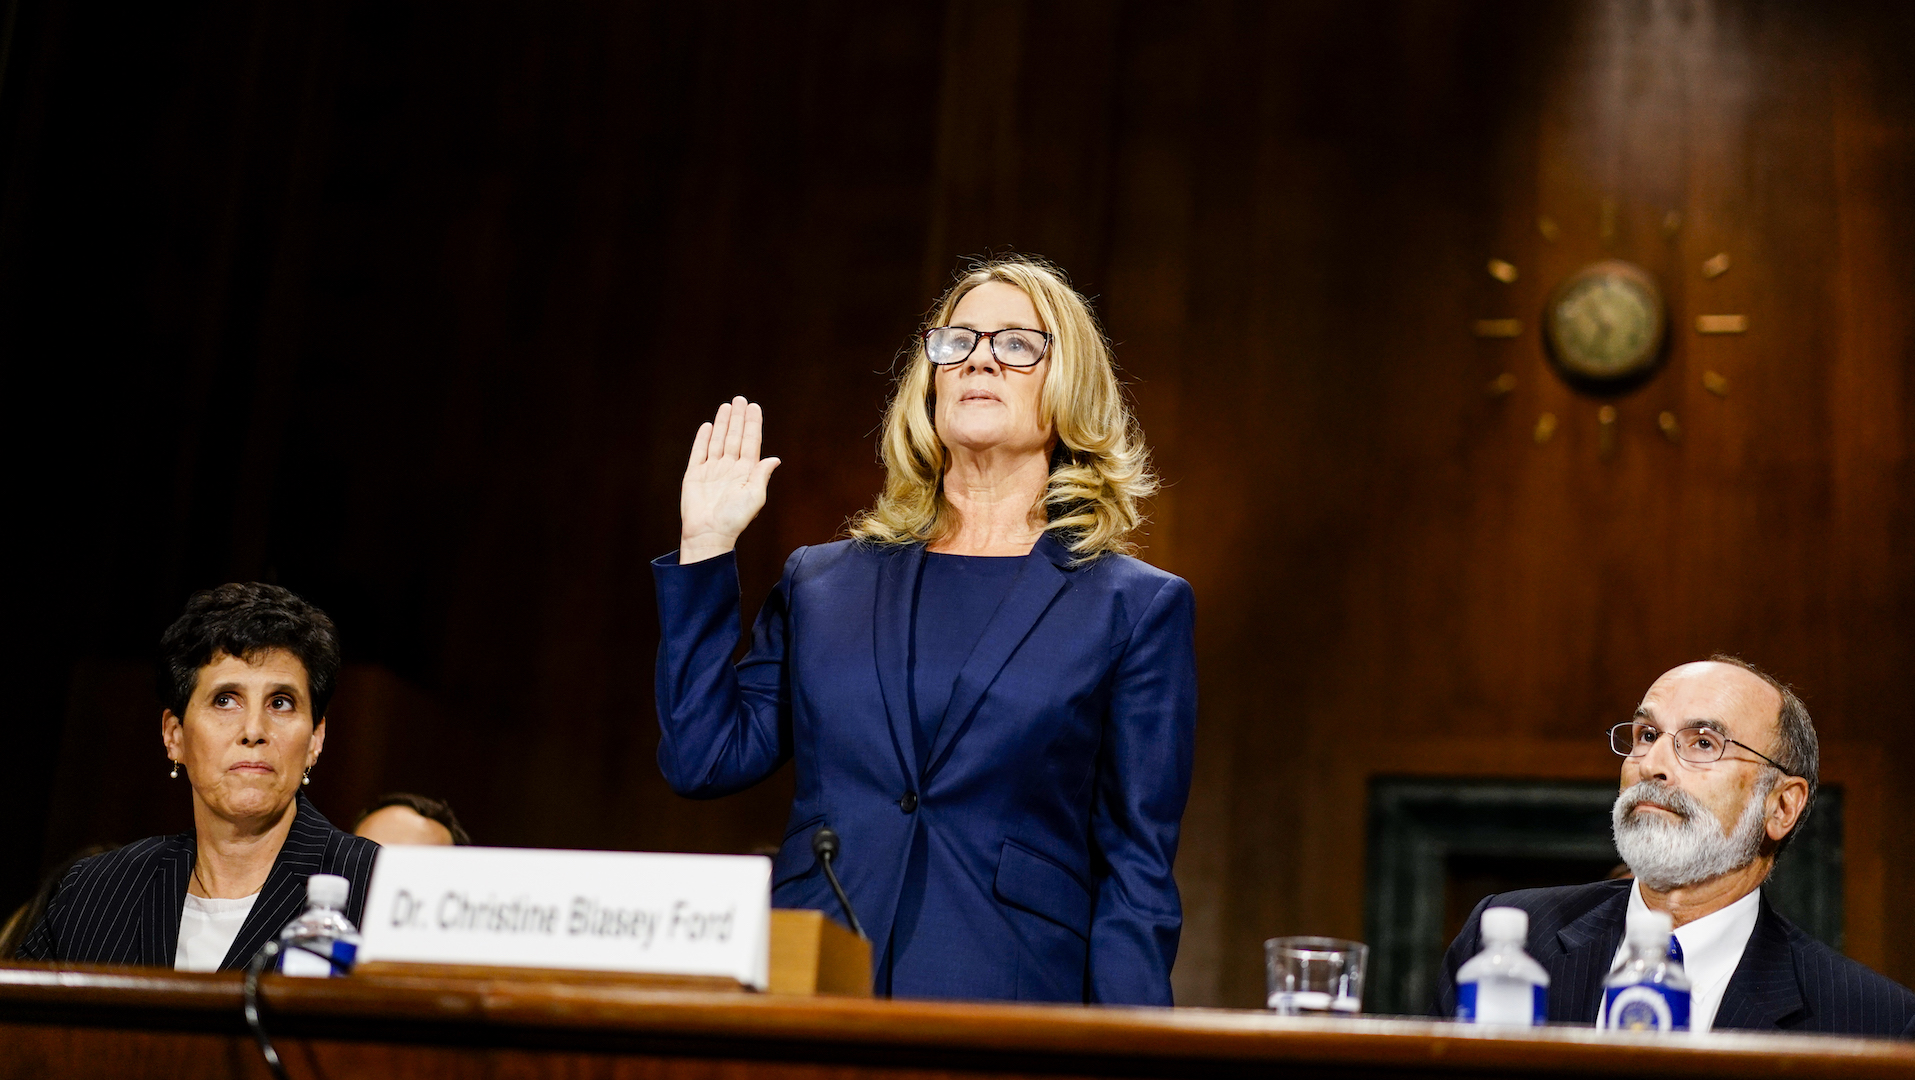 The power of Christine Blasey Ford's voice